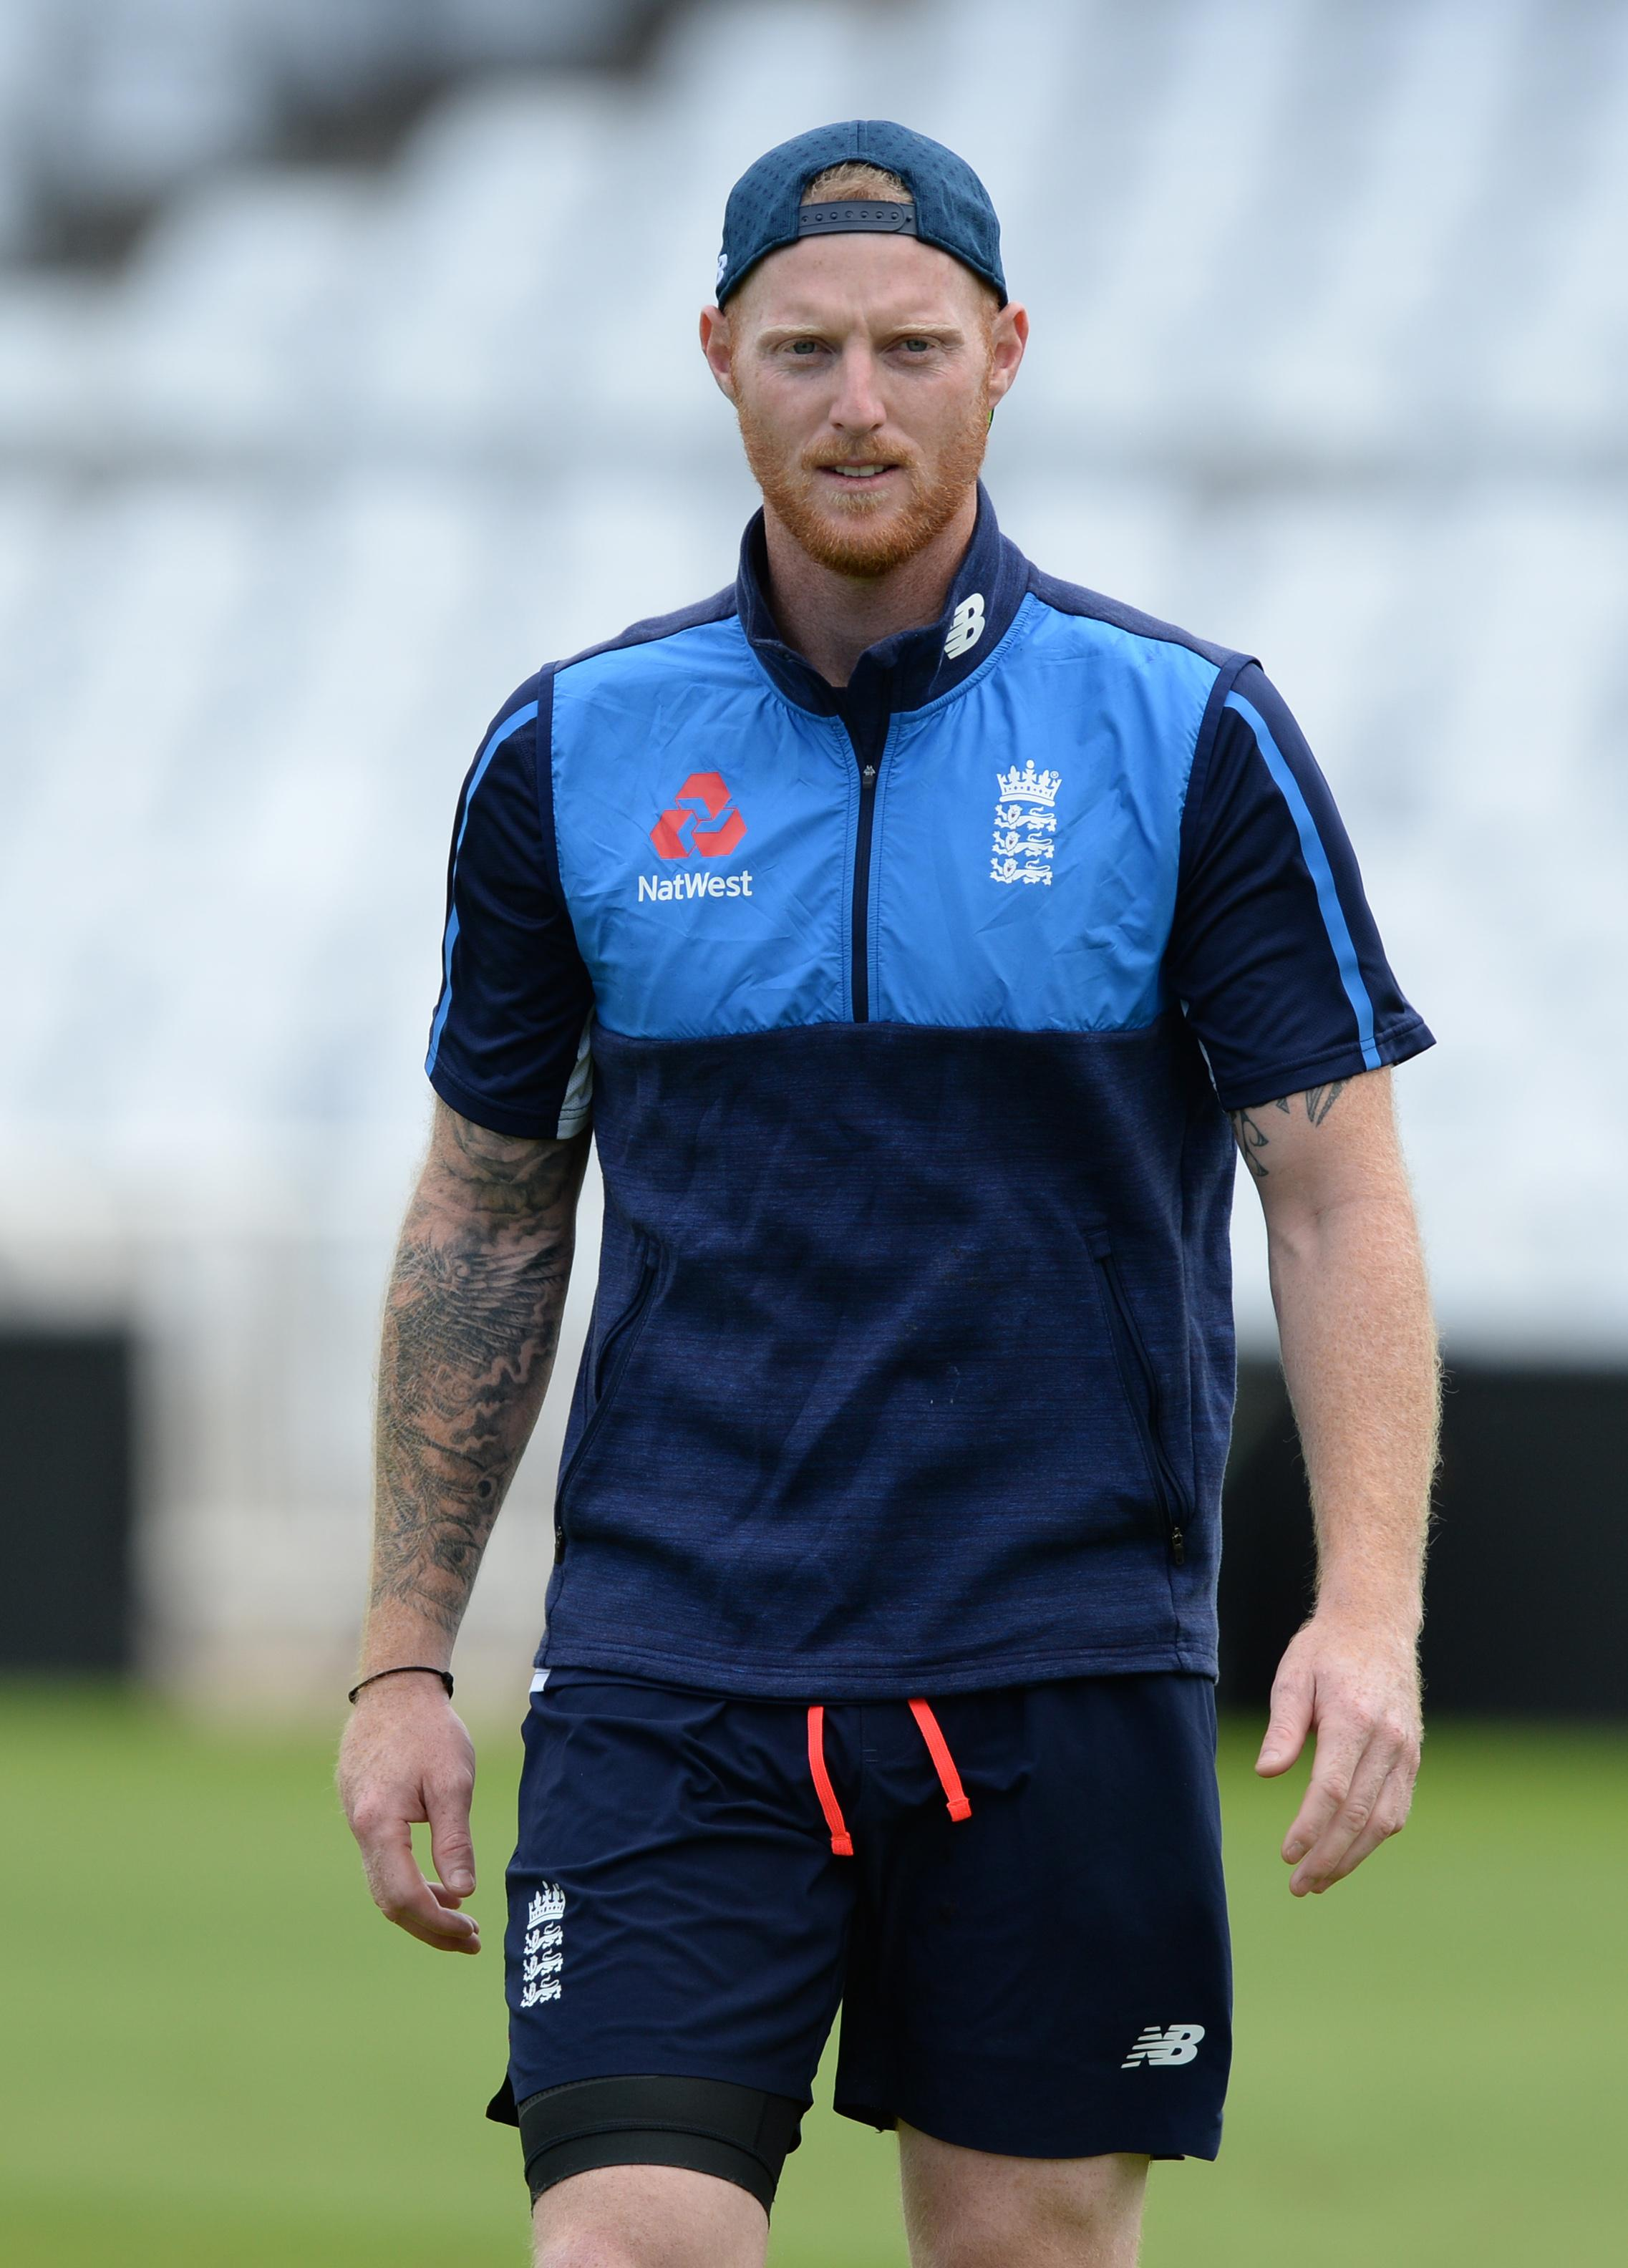 Ben Stokes was called back to the England squad for his own welfare